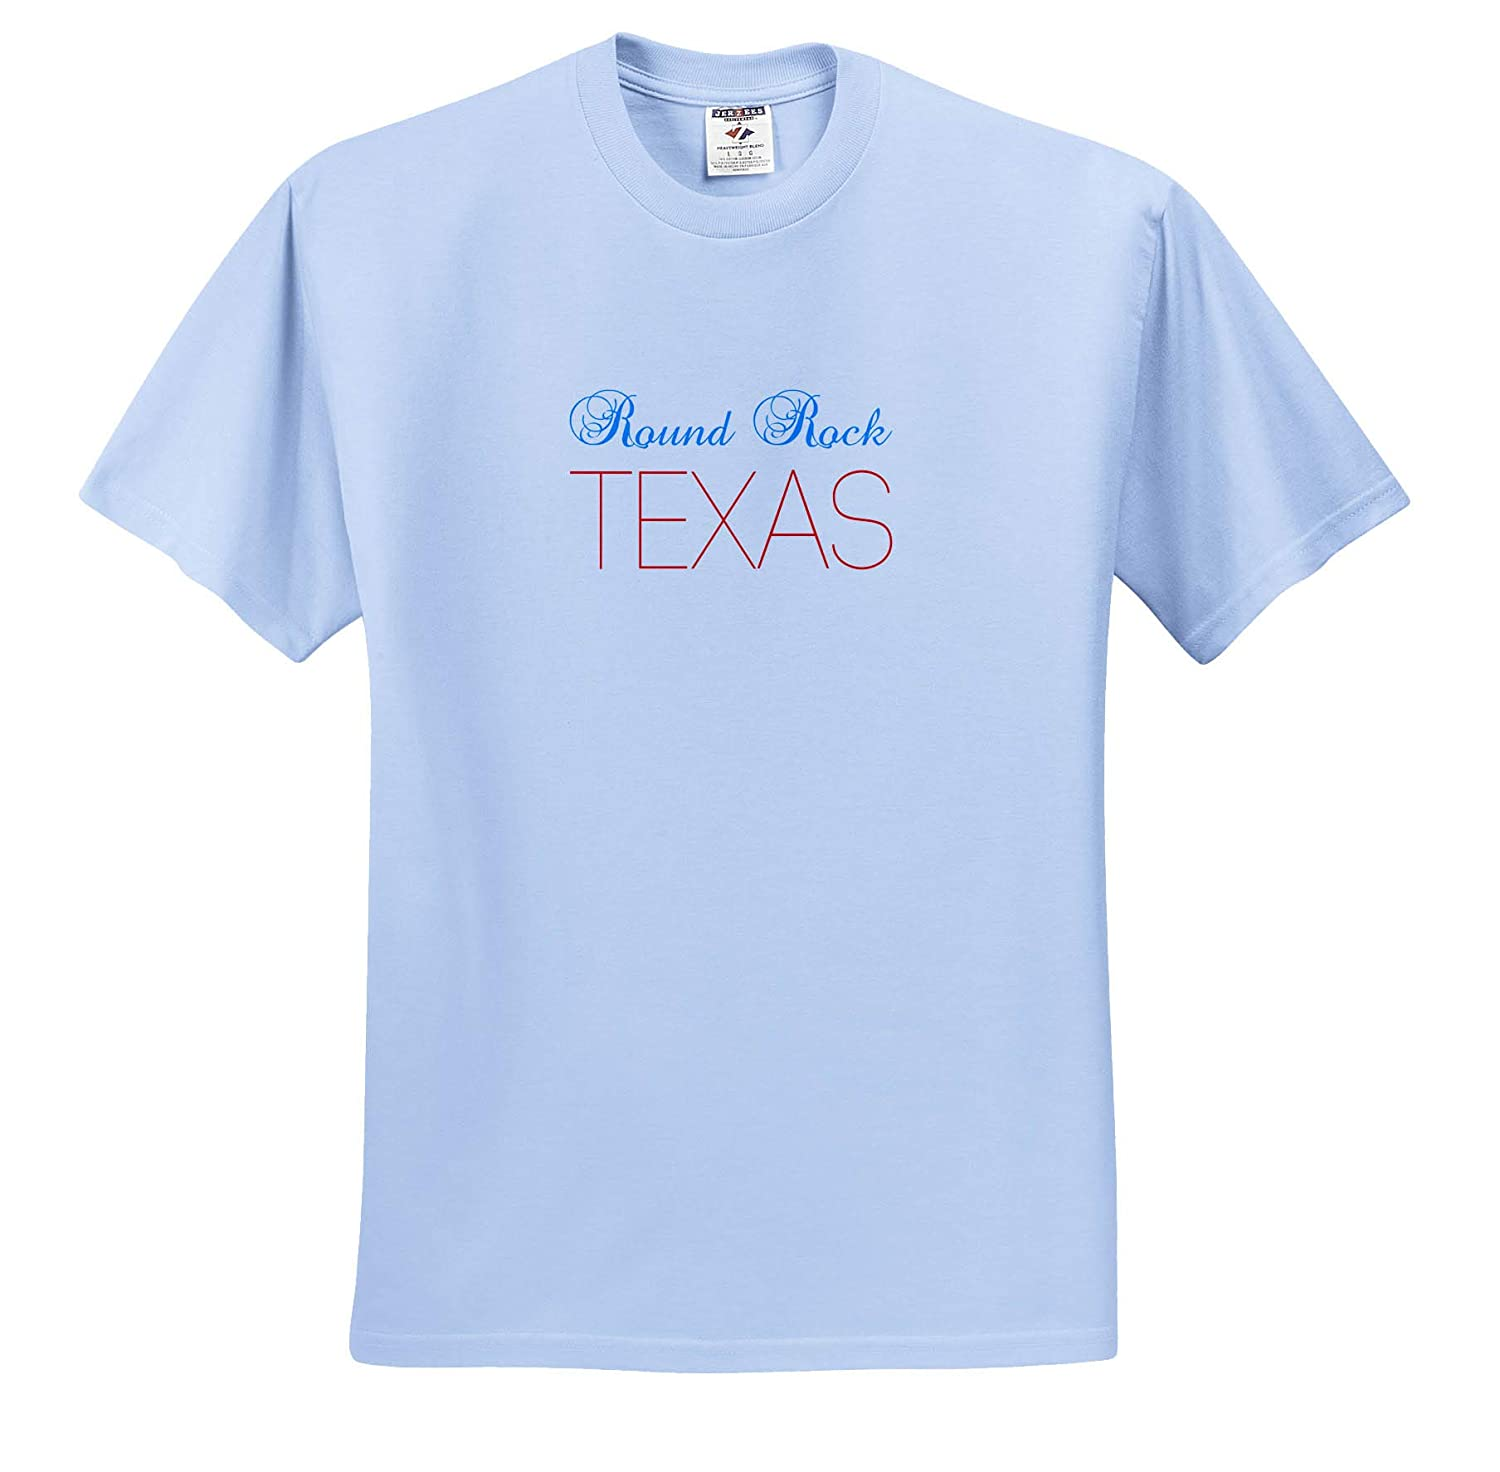 3dRose Alexis Design Round Rock red American Cities Texas Texas T-Shirts Patriotic Home Town Design Blue Text